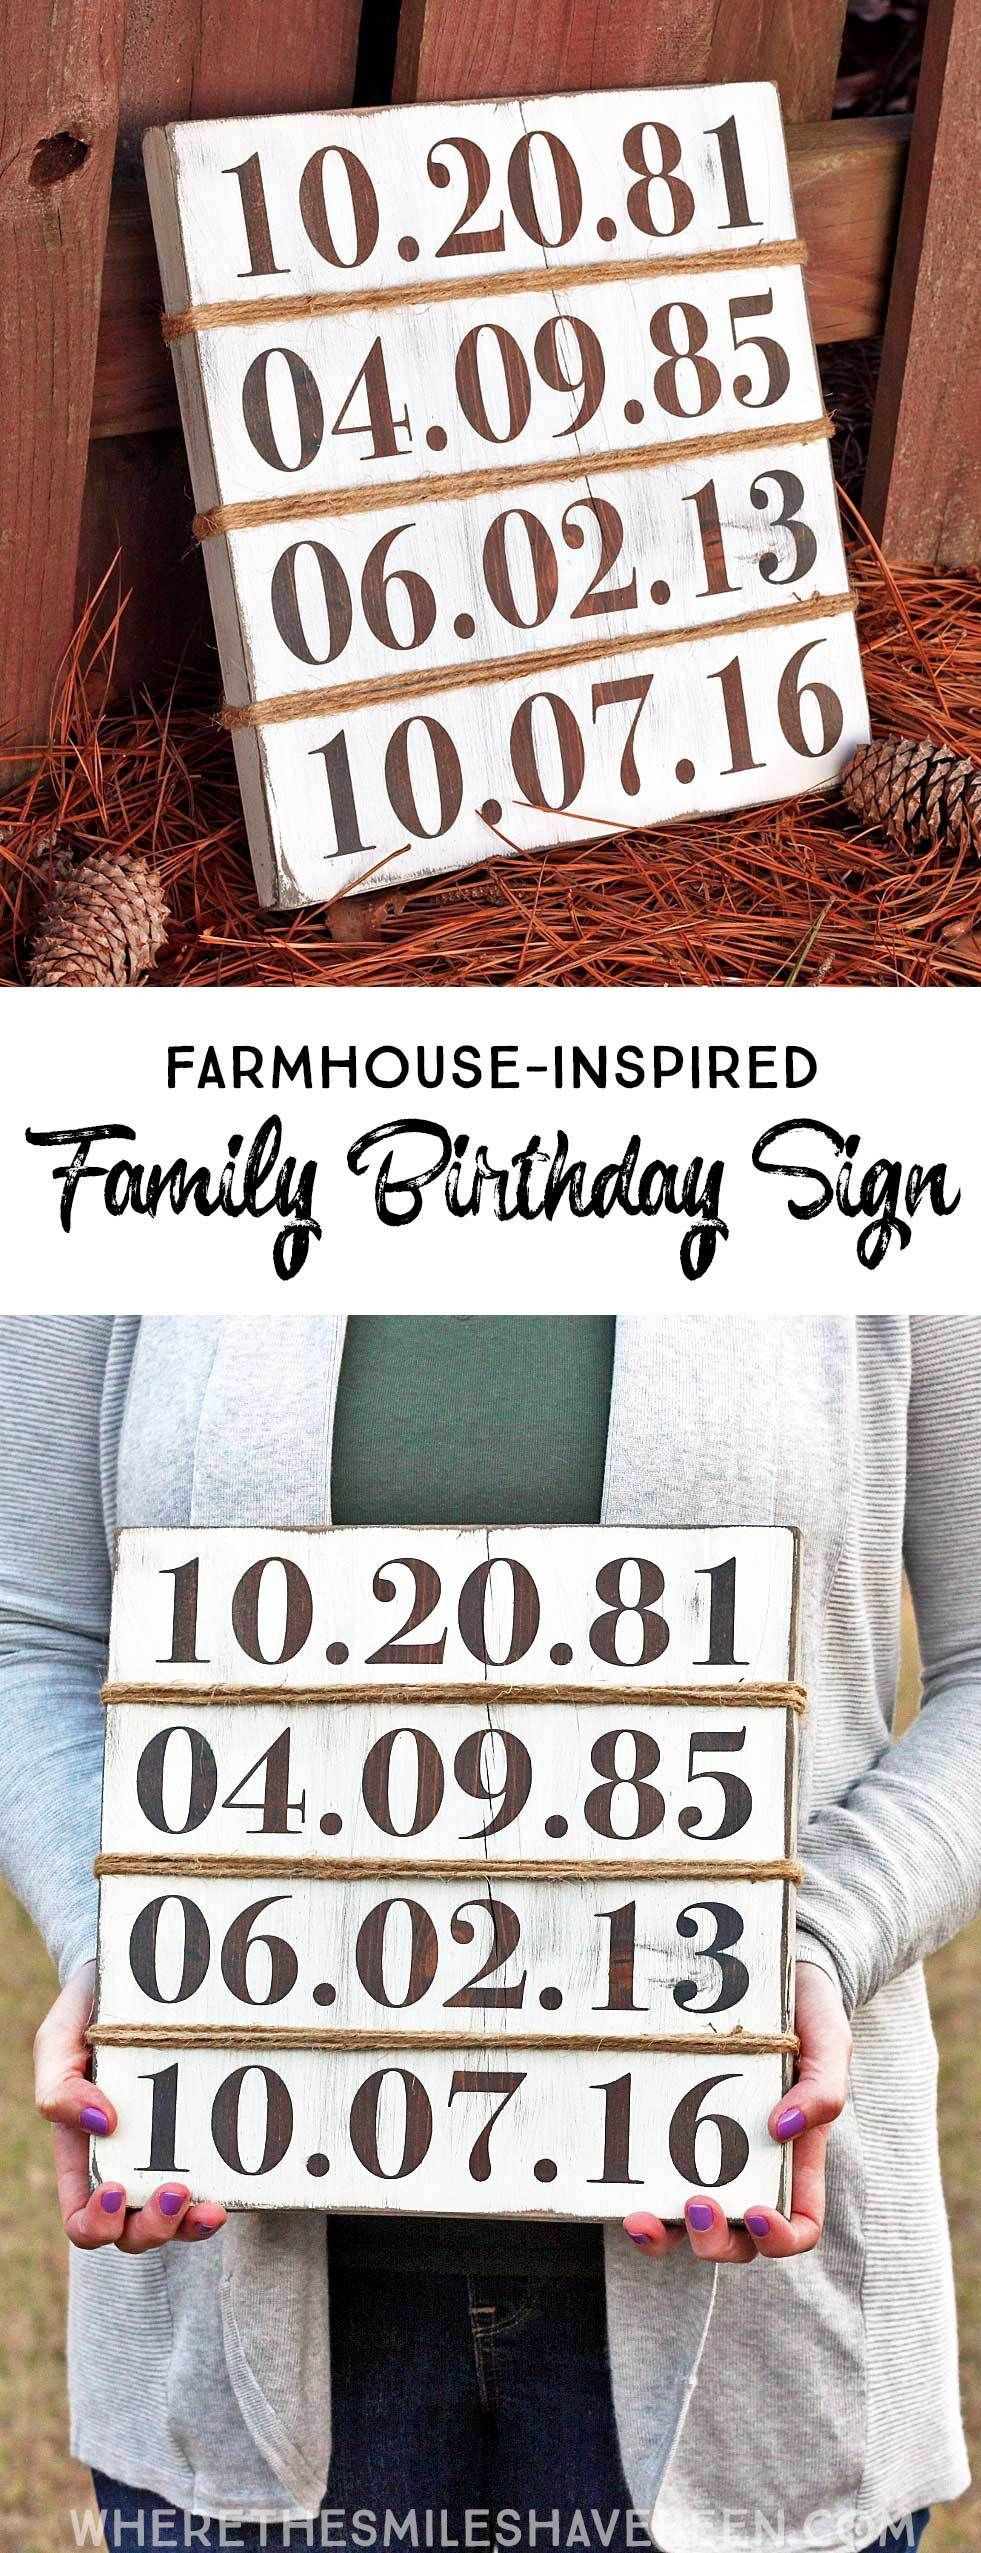 Display All Of Your Familys Birthdays With A Personalized Sign Rustic Farmhouse Inspired Family Birthday